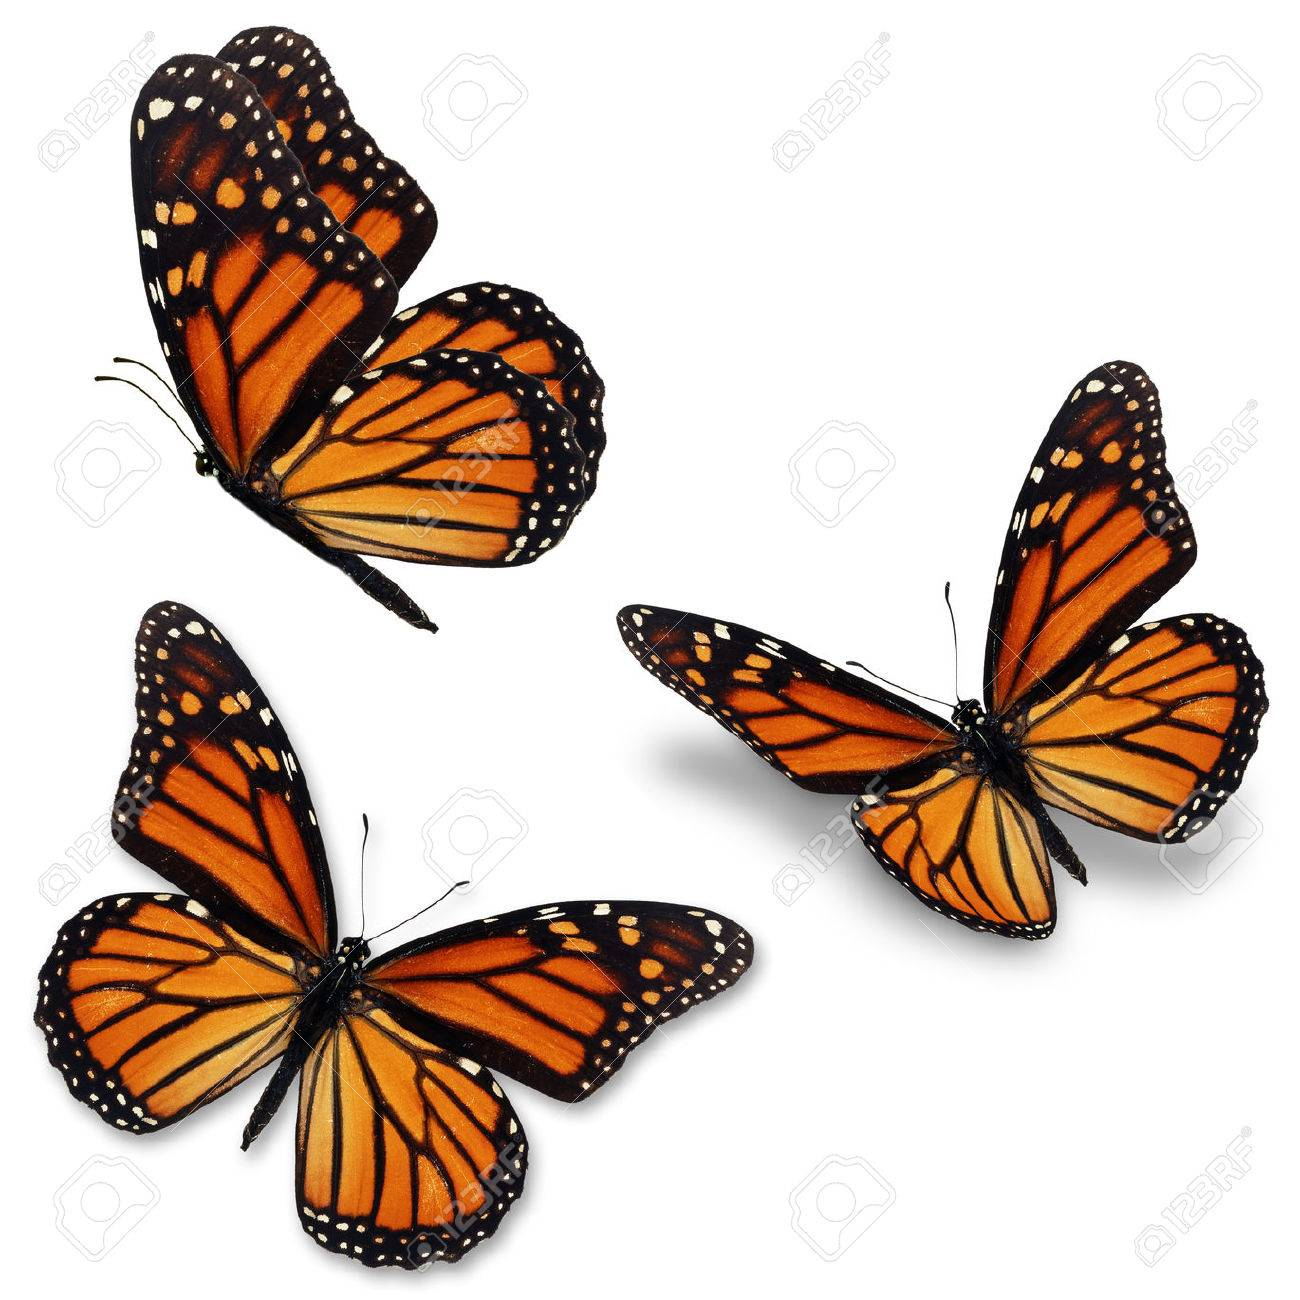 Three monarch butterfly, isolated on white background - 43190021